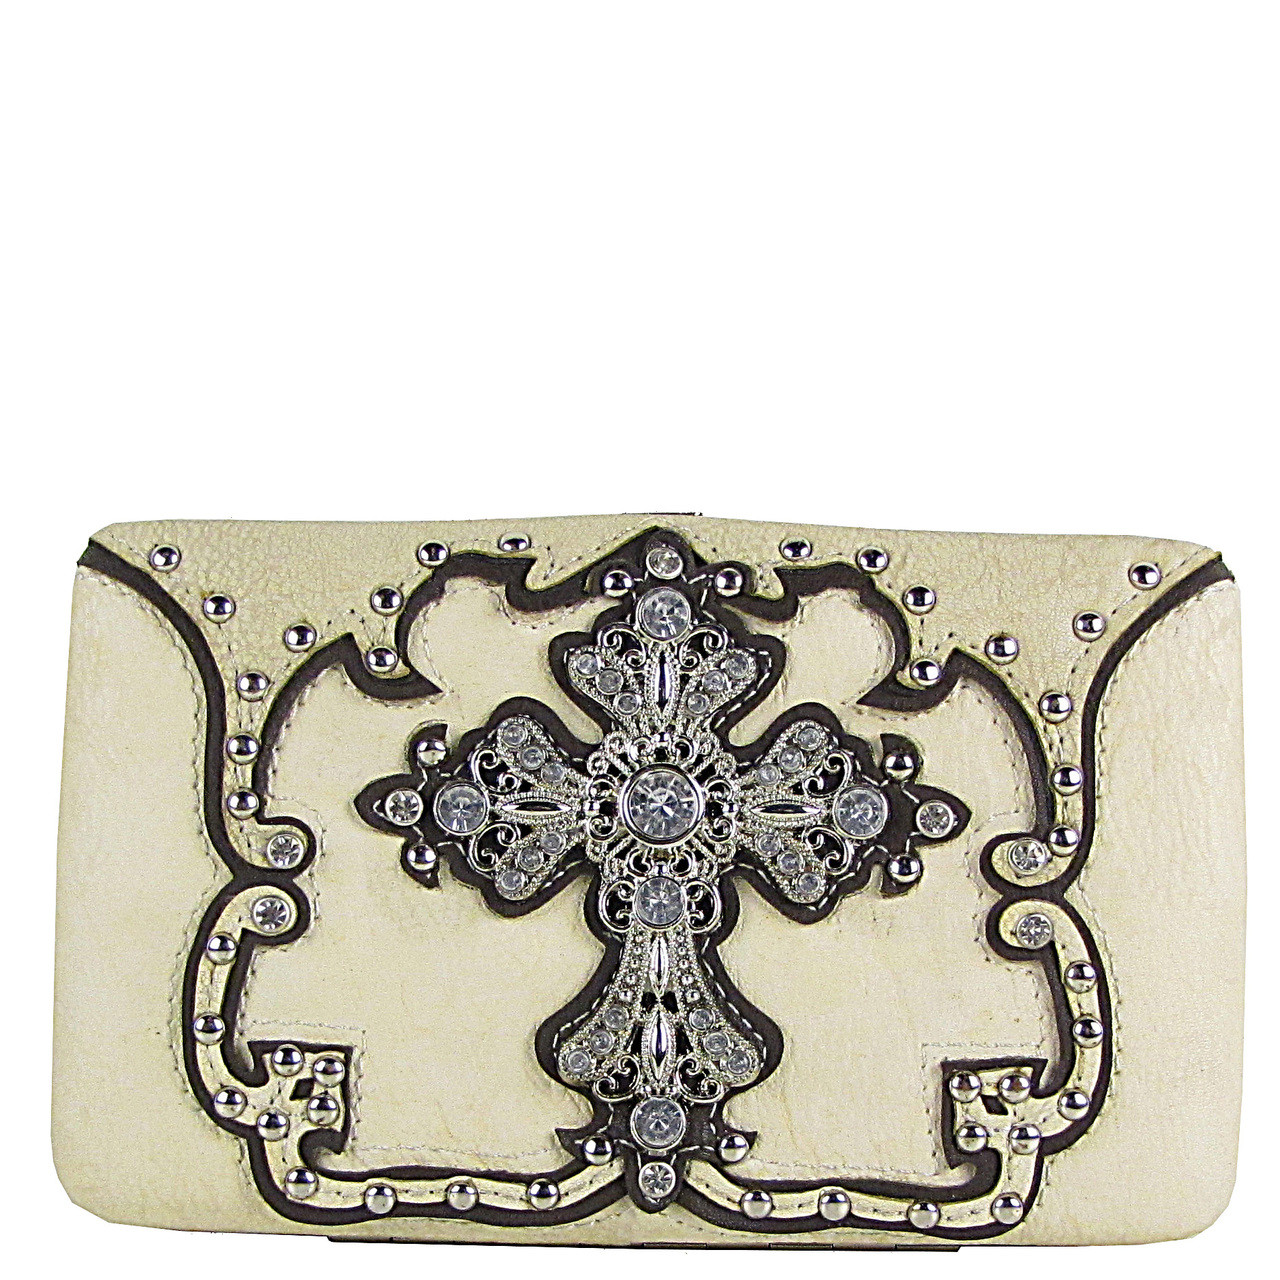 BEIGE STUDDED RHINESTONE CROSS LOOK FLAT THICK WALLET FW2-04124BEI